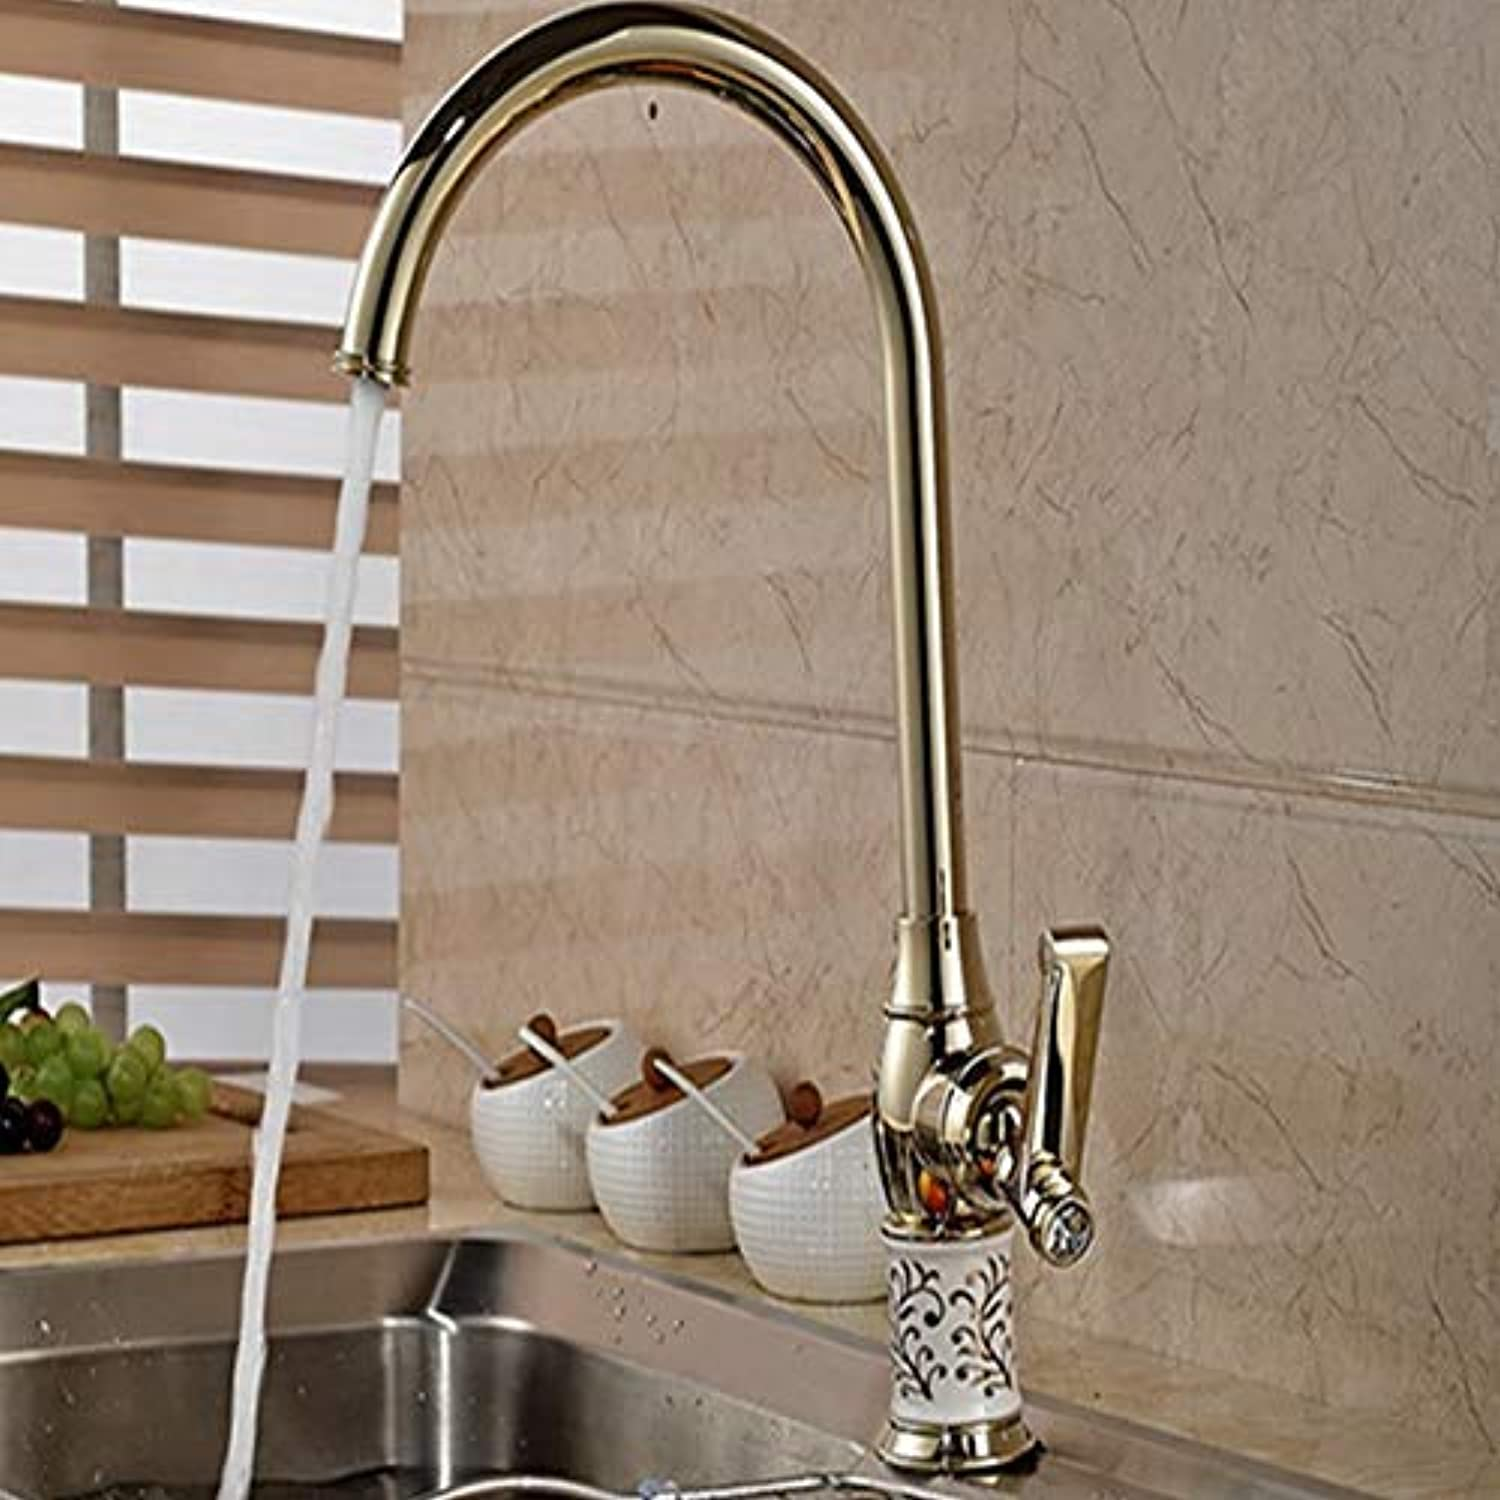 Oudan Wholesale and Retail Modern golden Kitchen Tap Swivel Spout Ceramic Style Sinks Mounted Mixer Deck (color   -, Size   -)